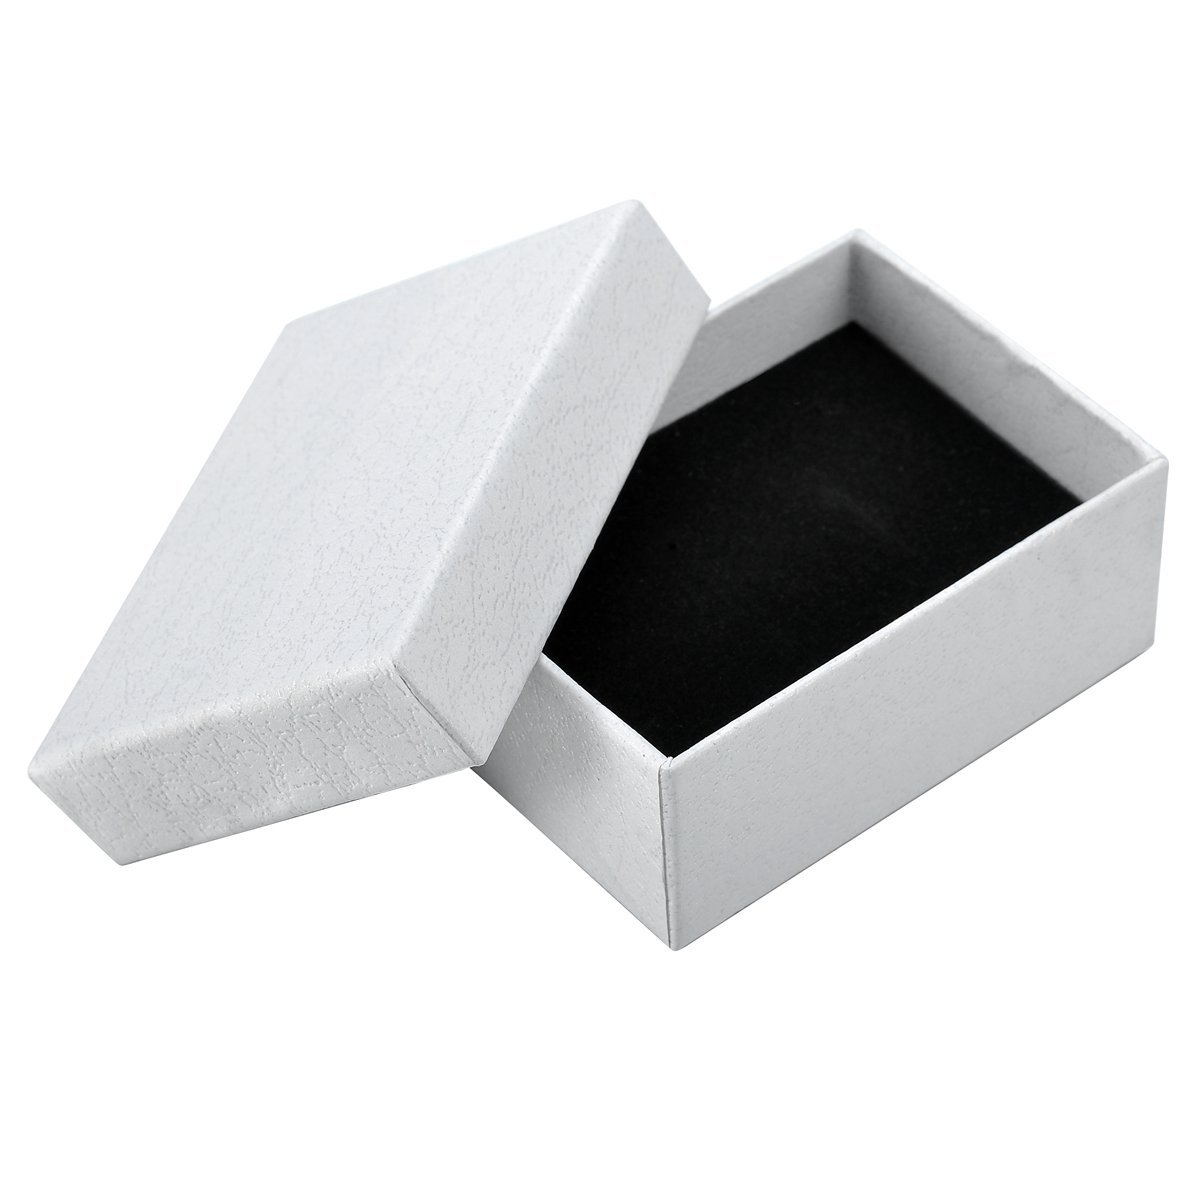 Cheap Cardboard Jewelry Boxes find Cardboard Jewelry Boxes deals on